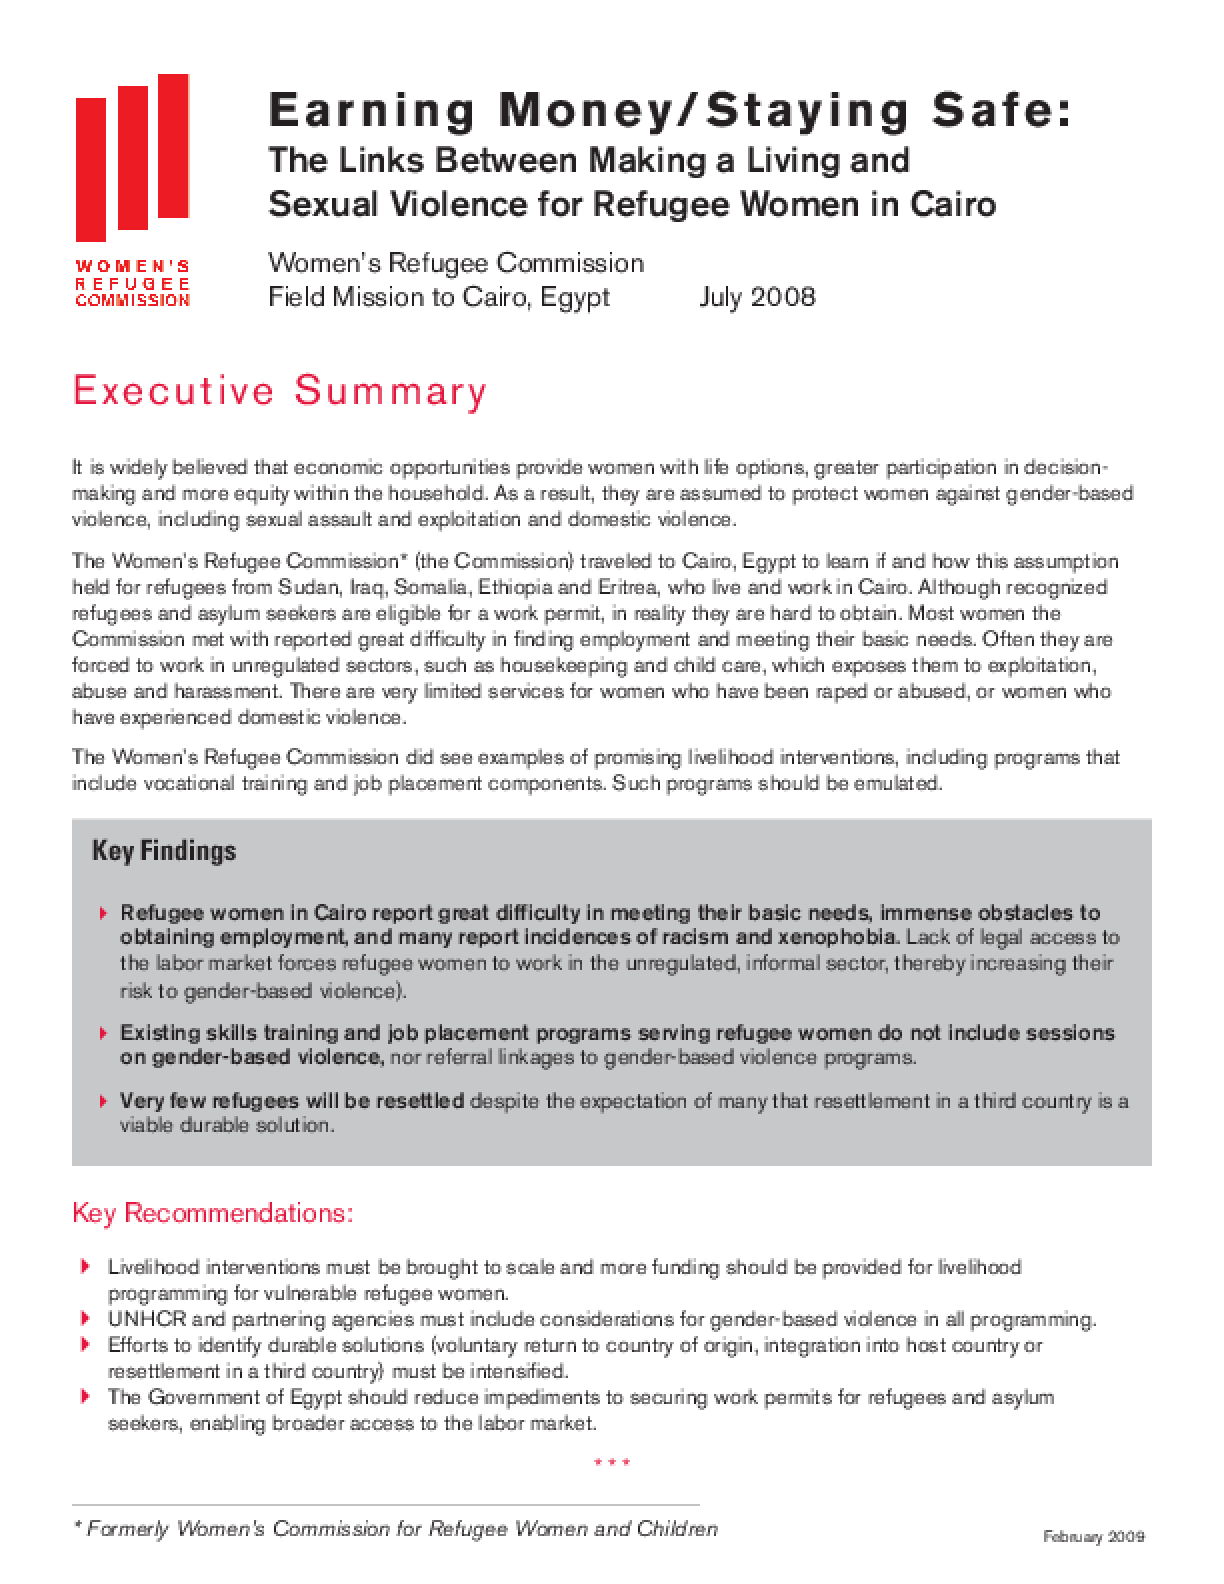 Earning Money/Staying Safe: The Links Between Making a Living and Sexual Violence for Refugee Women in Cairo